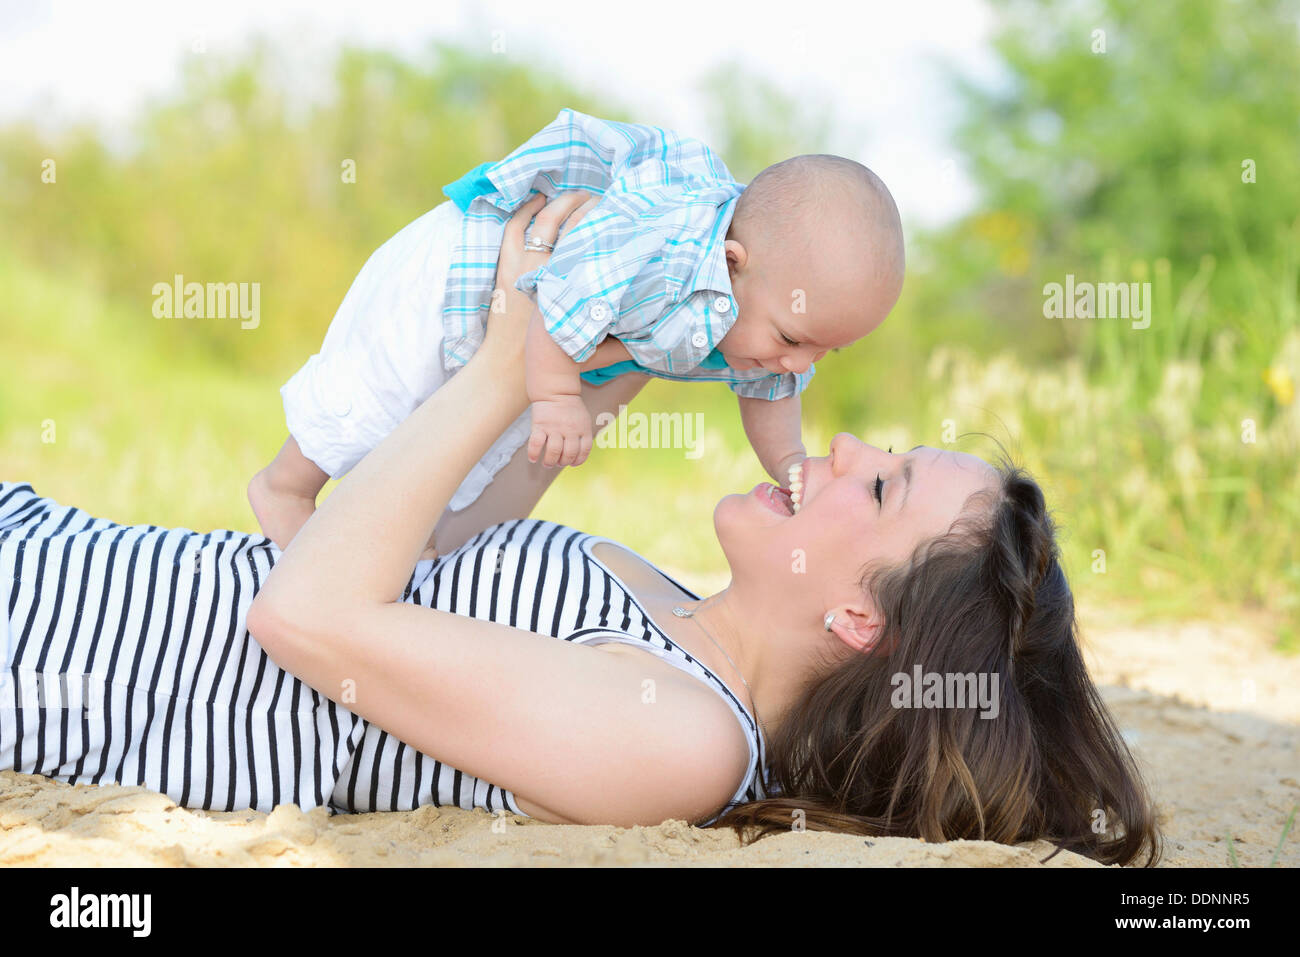 Happy mother holding baby outdoors - Stock Image